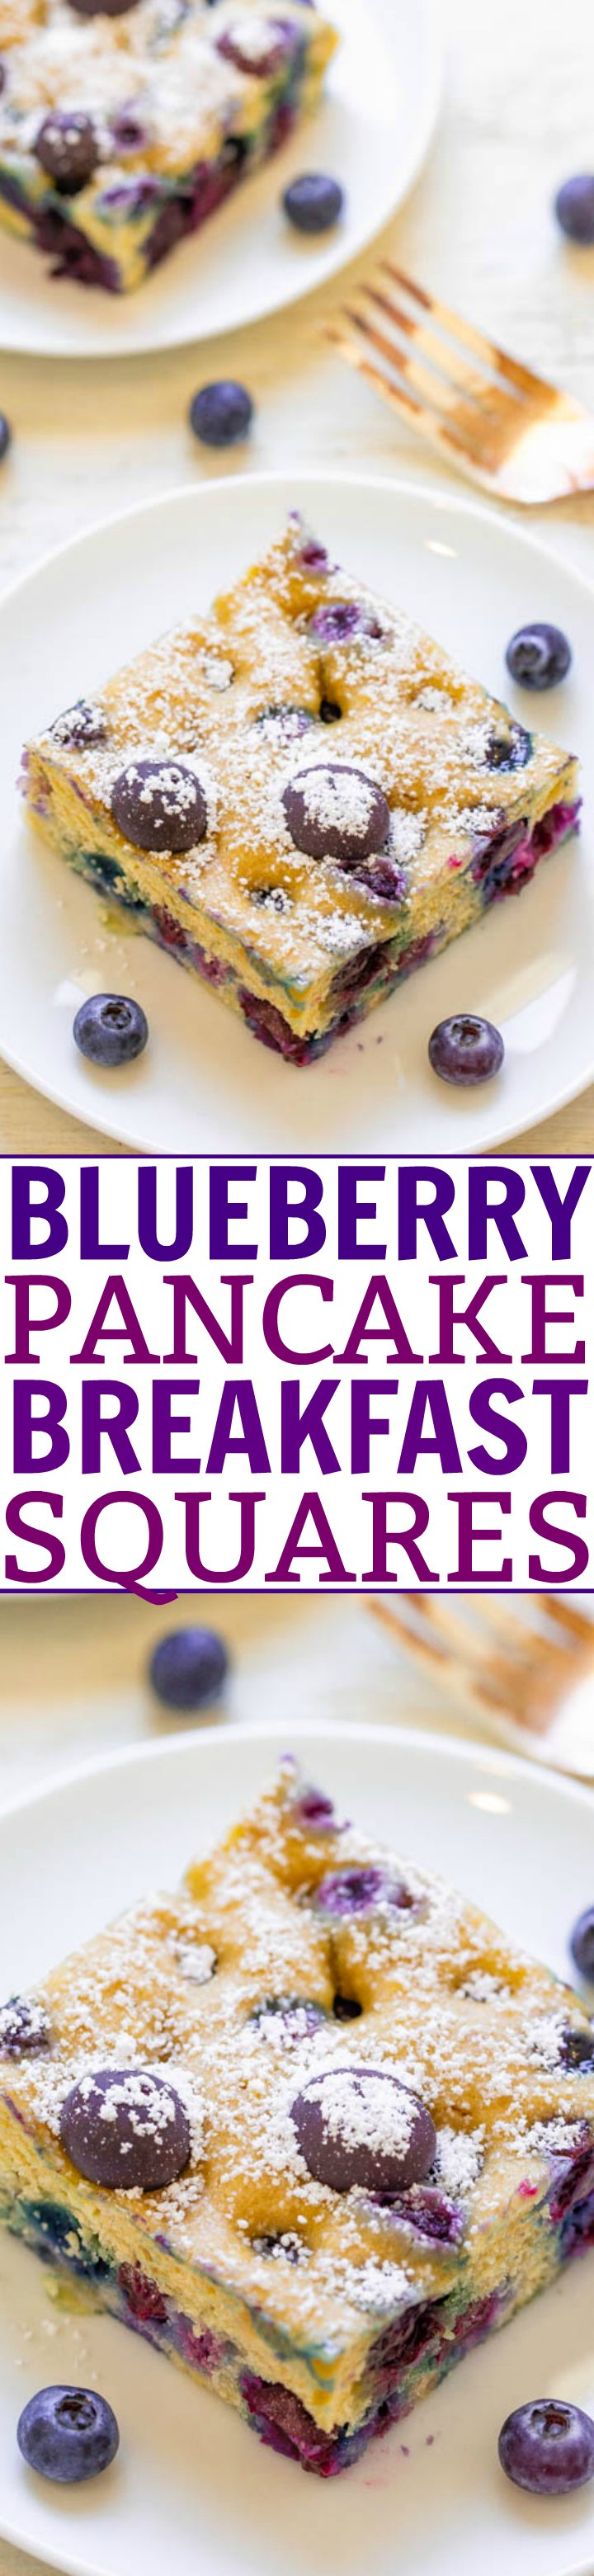 Blueberry Pancake Breakfast Squares - Craving pancakes but not the work of standing at the stove flipping them? Make these EASY breakfast squares with only THREE ingredients!! Perfect for weekend brunch or as a make-ahead weekday breakfast!!